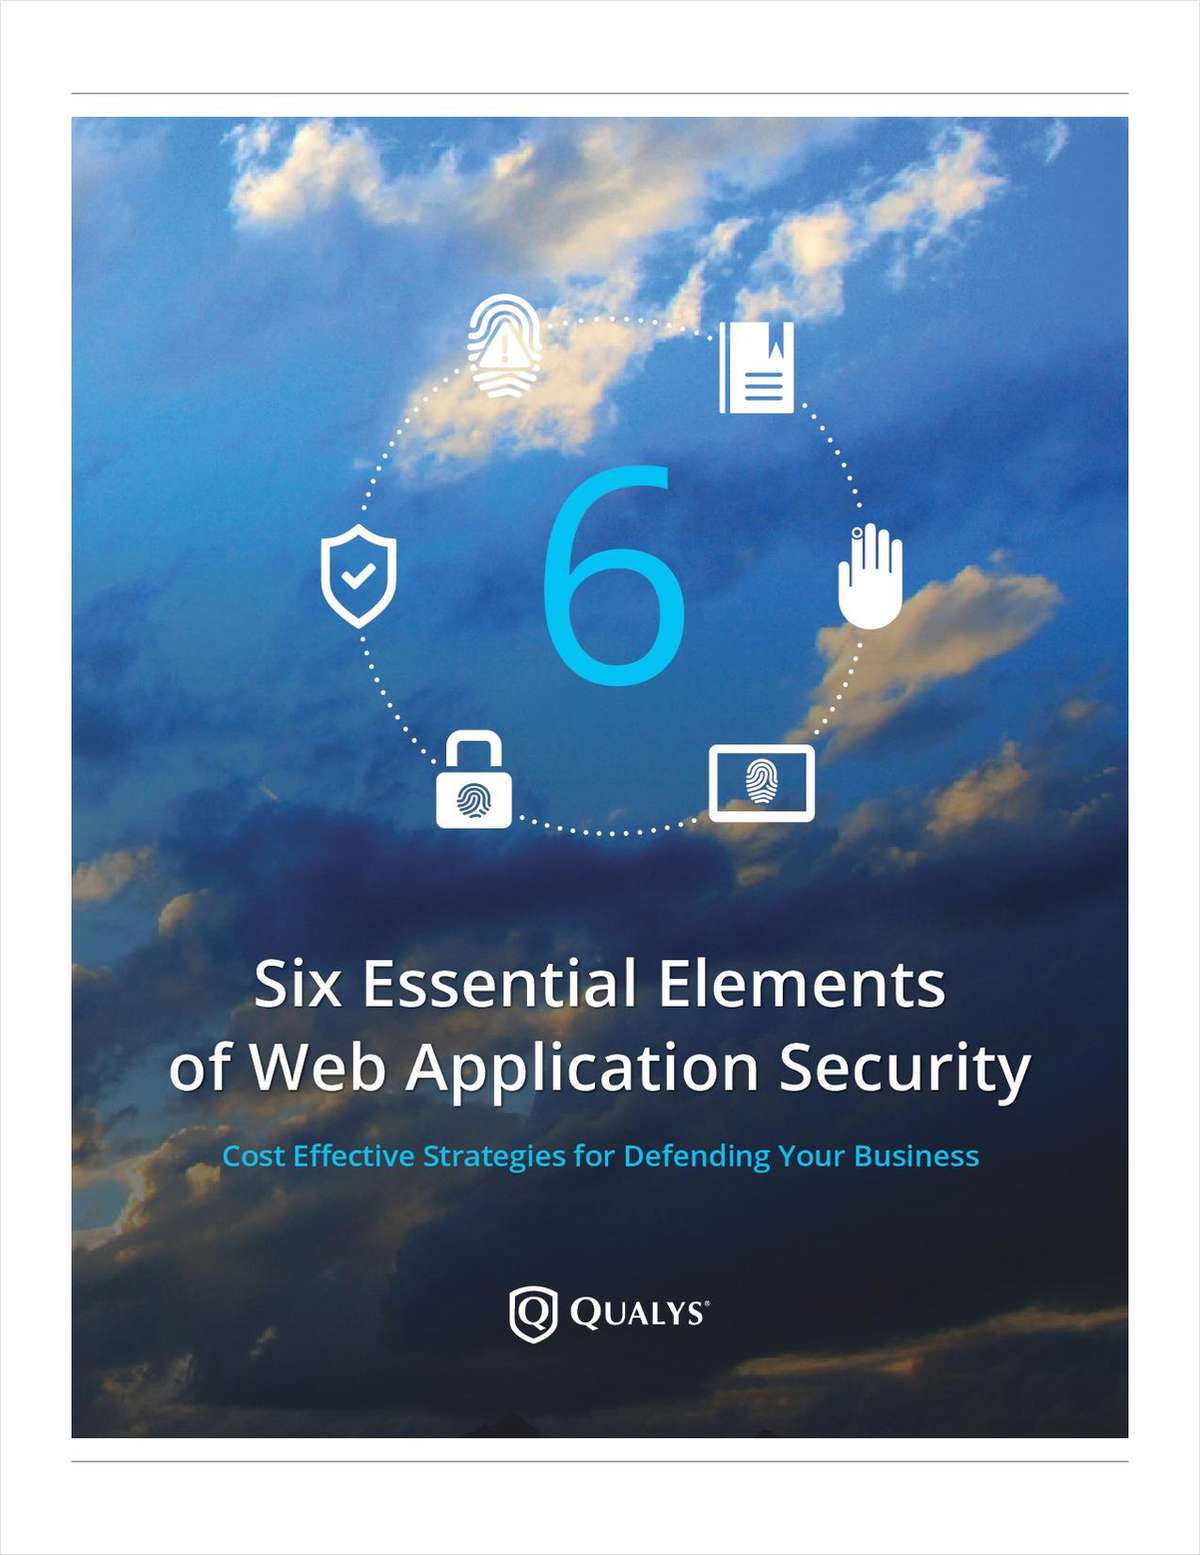 Six Essential Elements of Web Application Security